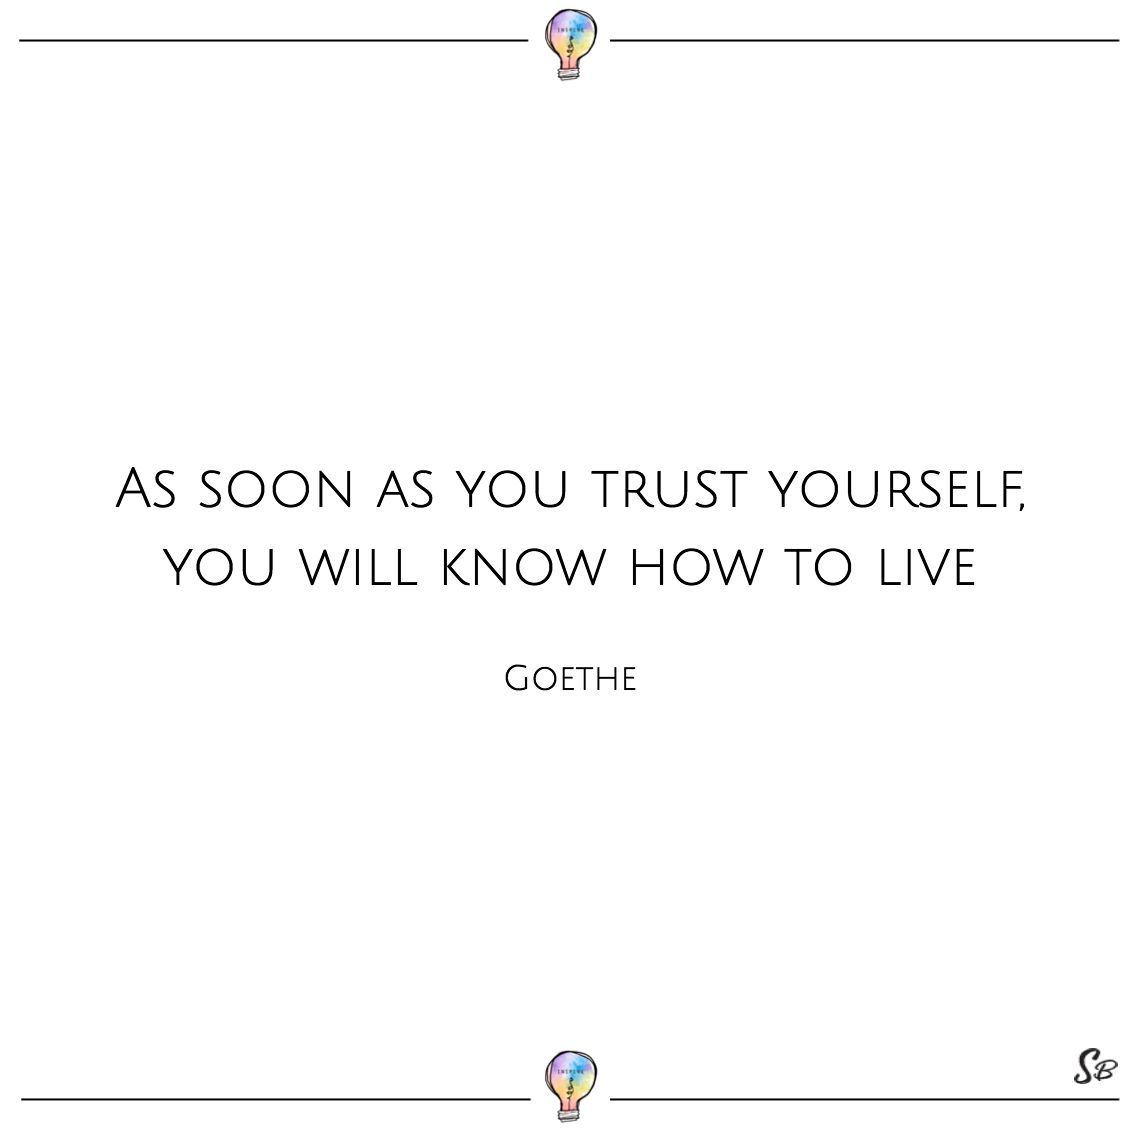 As soon as you trust yourself, you will know how to live goethe